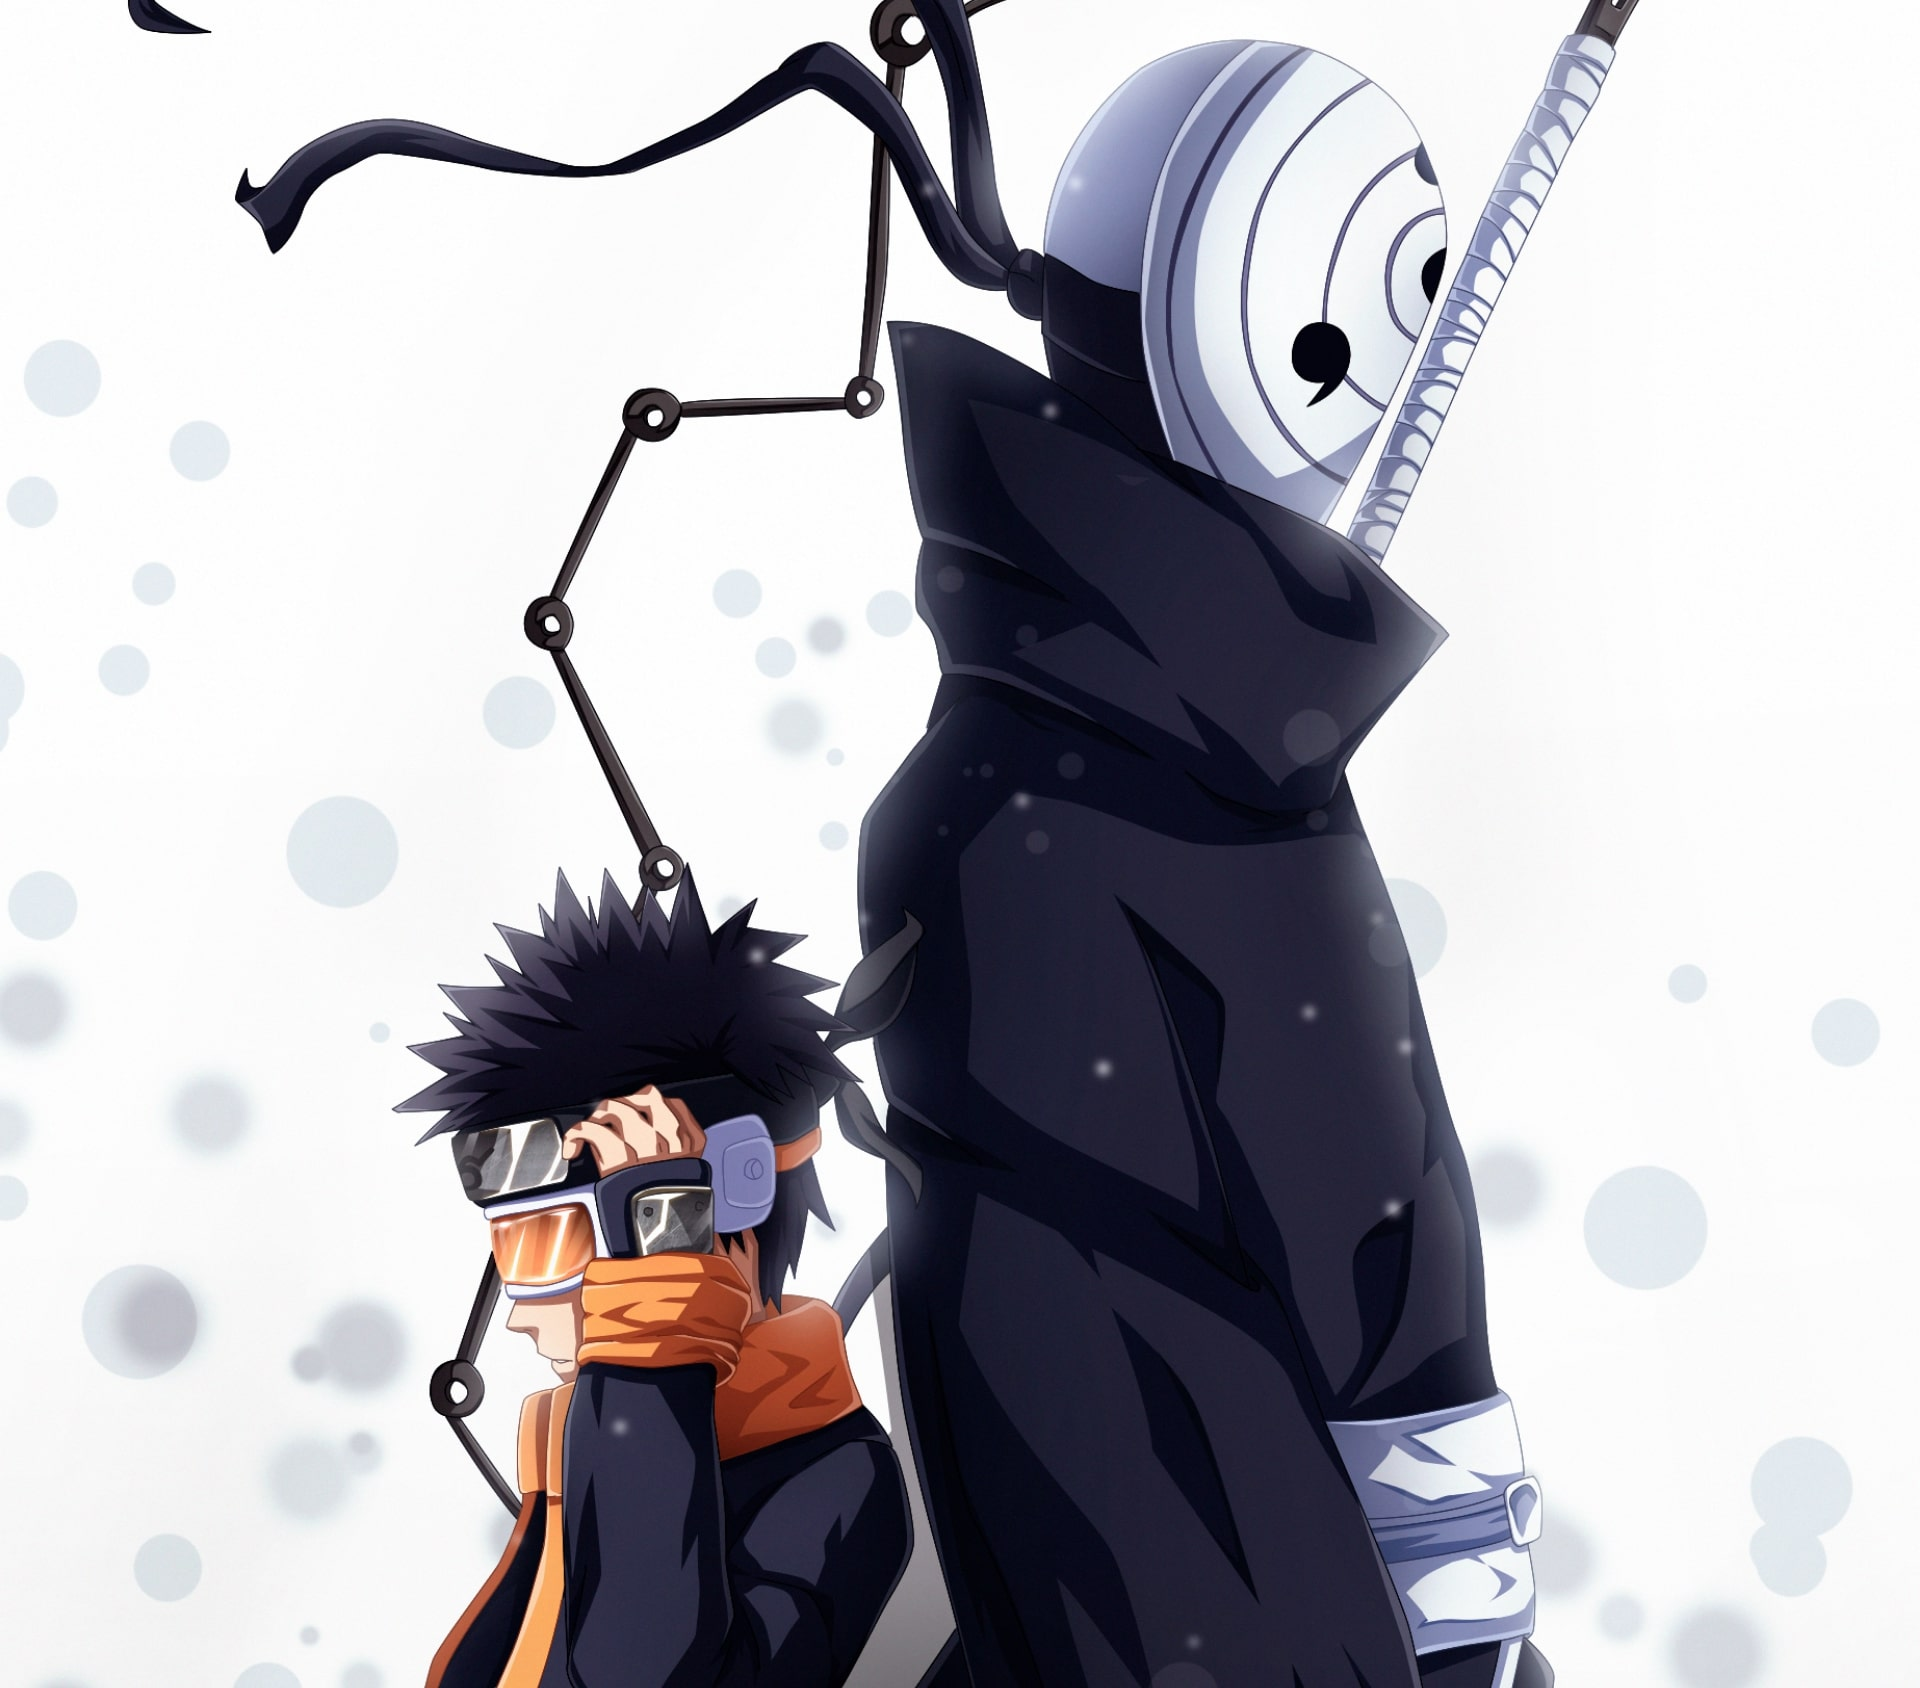 Wallpaper of Anime Naruto Obito Uchiha background HD image 1920x1688